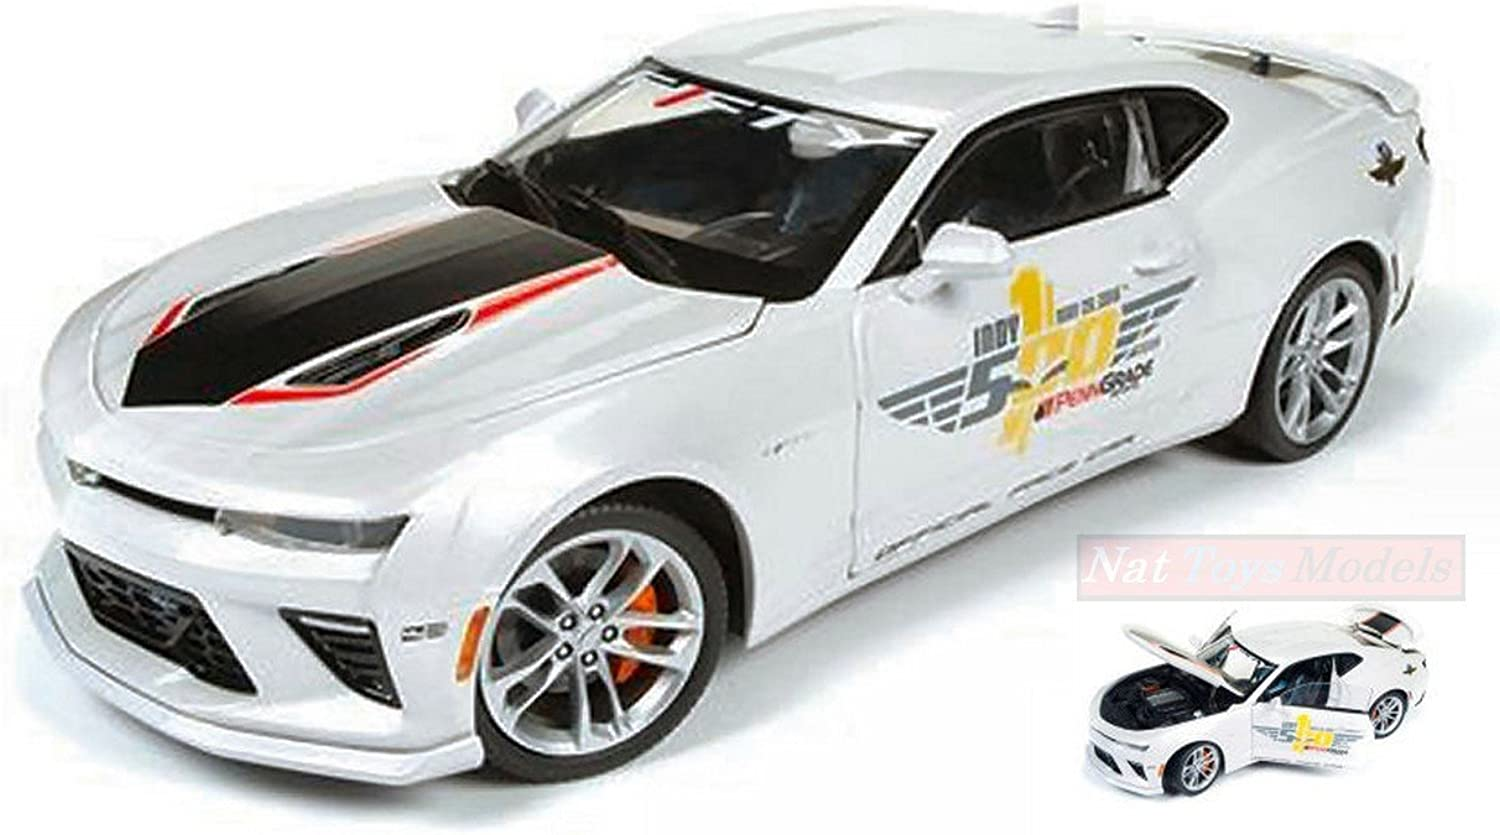 AUTO WORLD AW236 CHEVY CAMARO INDY PACE CAR 2017 40th ANNIVERSARY 1 18 DIE CAST